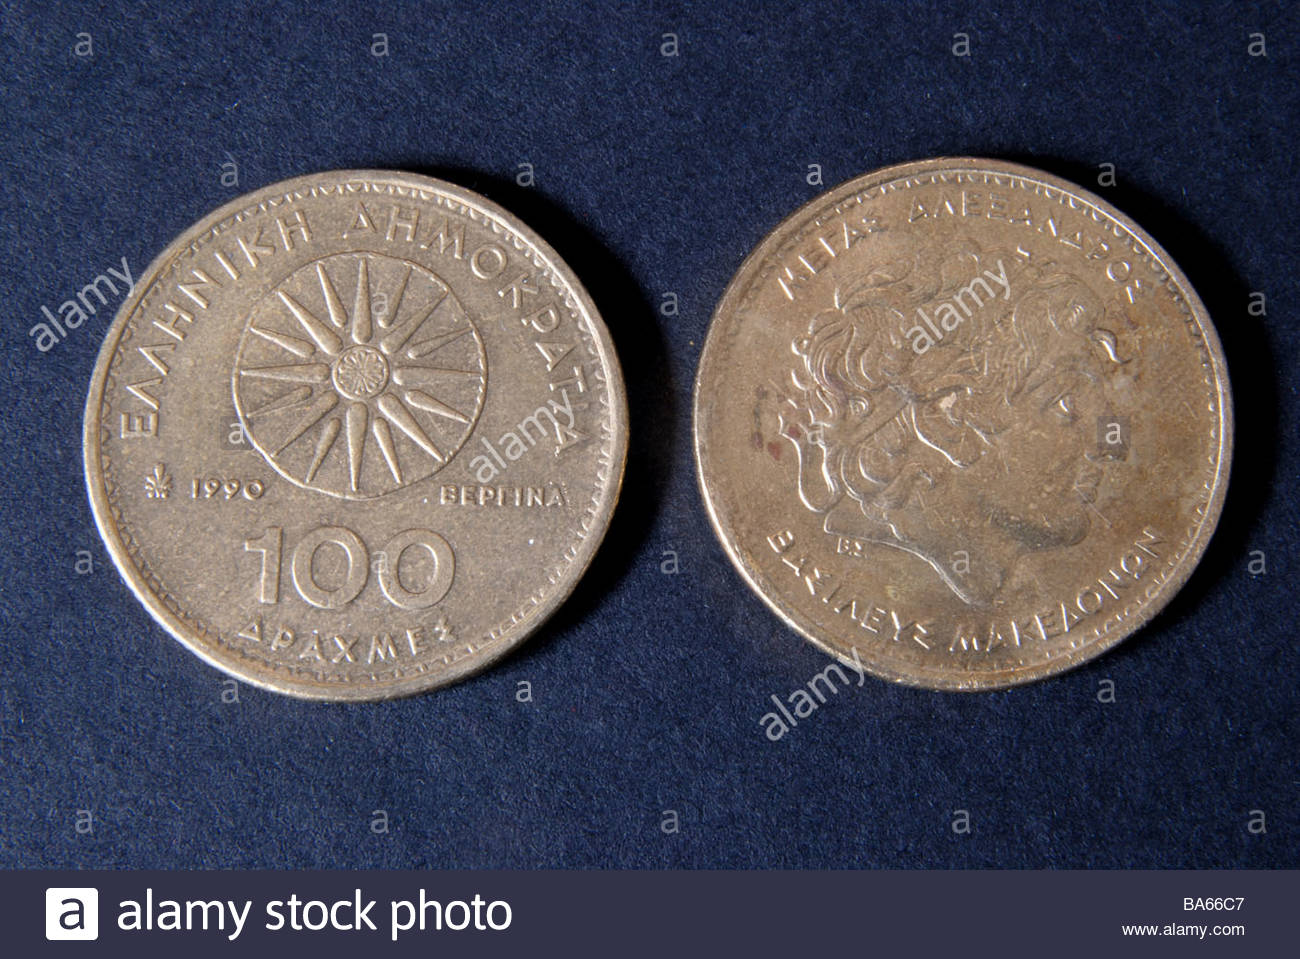 Front and rear of Greek 100 drachma coins. - Stock Image